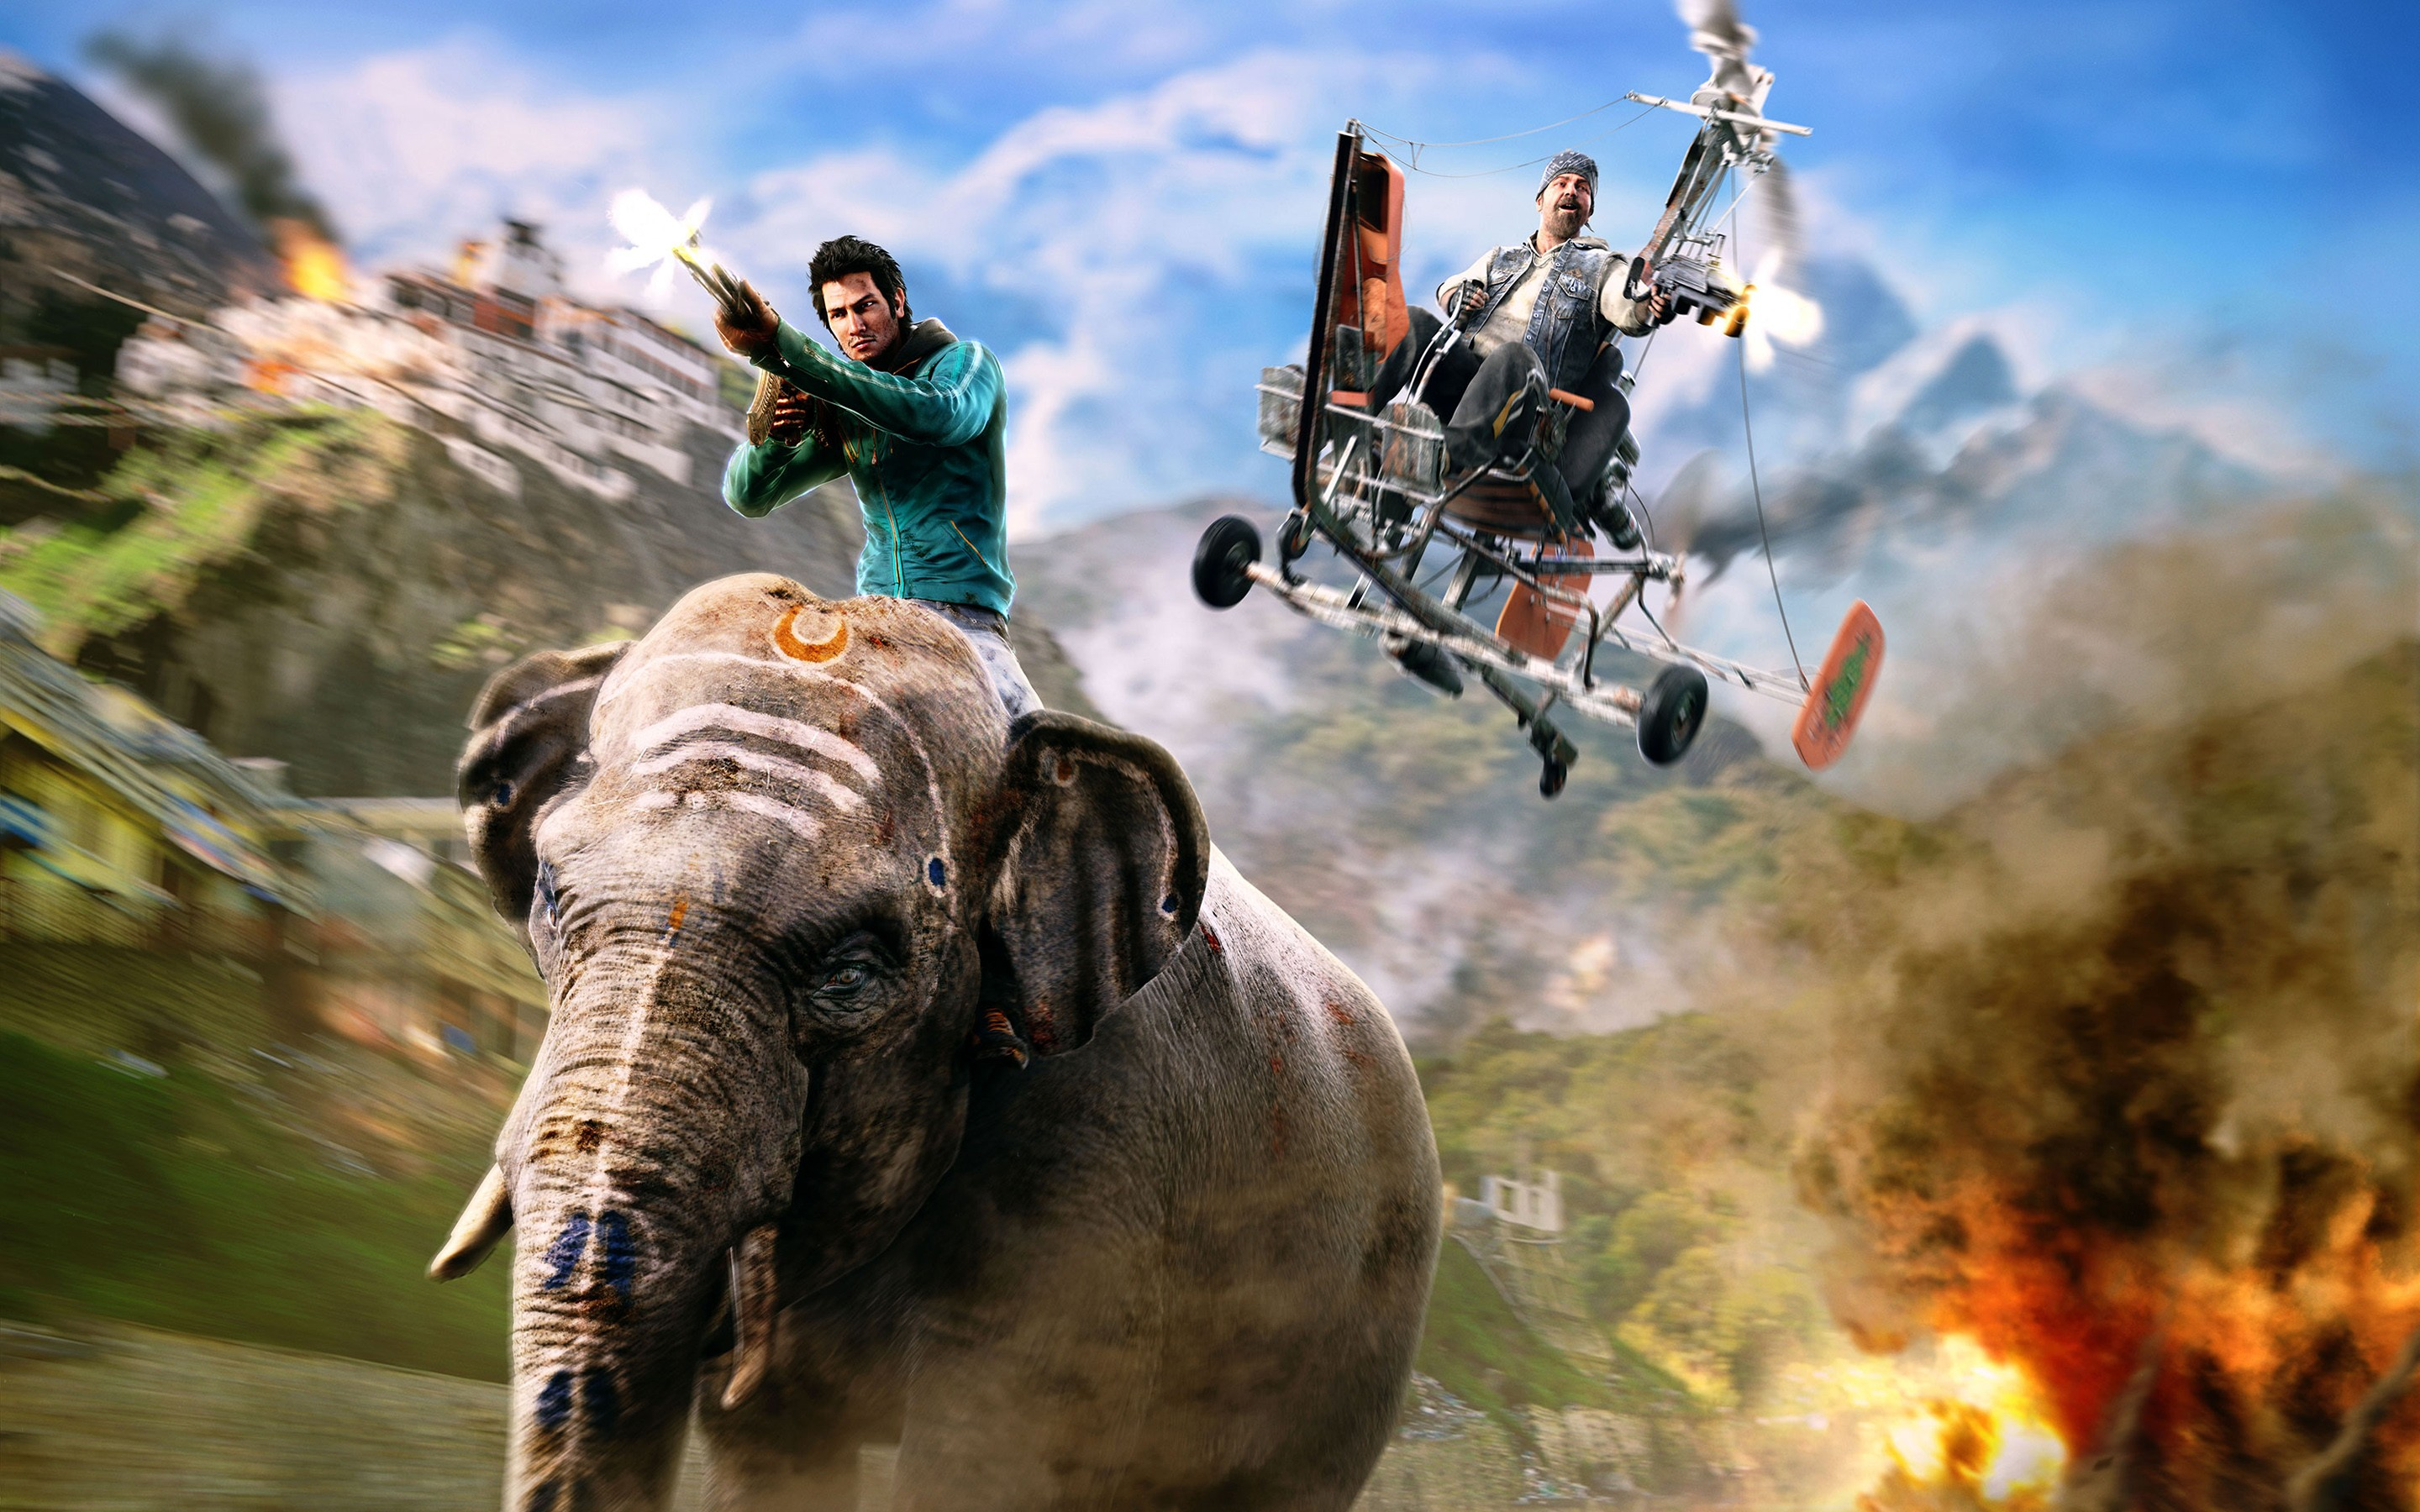 1280x1024 Far Cry 4 Hd 1280x1024 Resolution Hd 4k Wallpapers Images Backgrounds Photos And Pictures